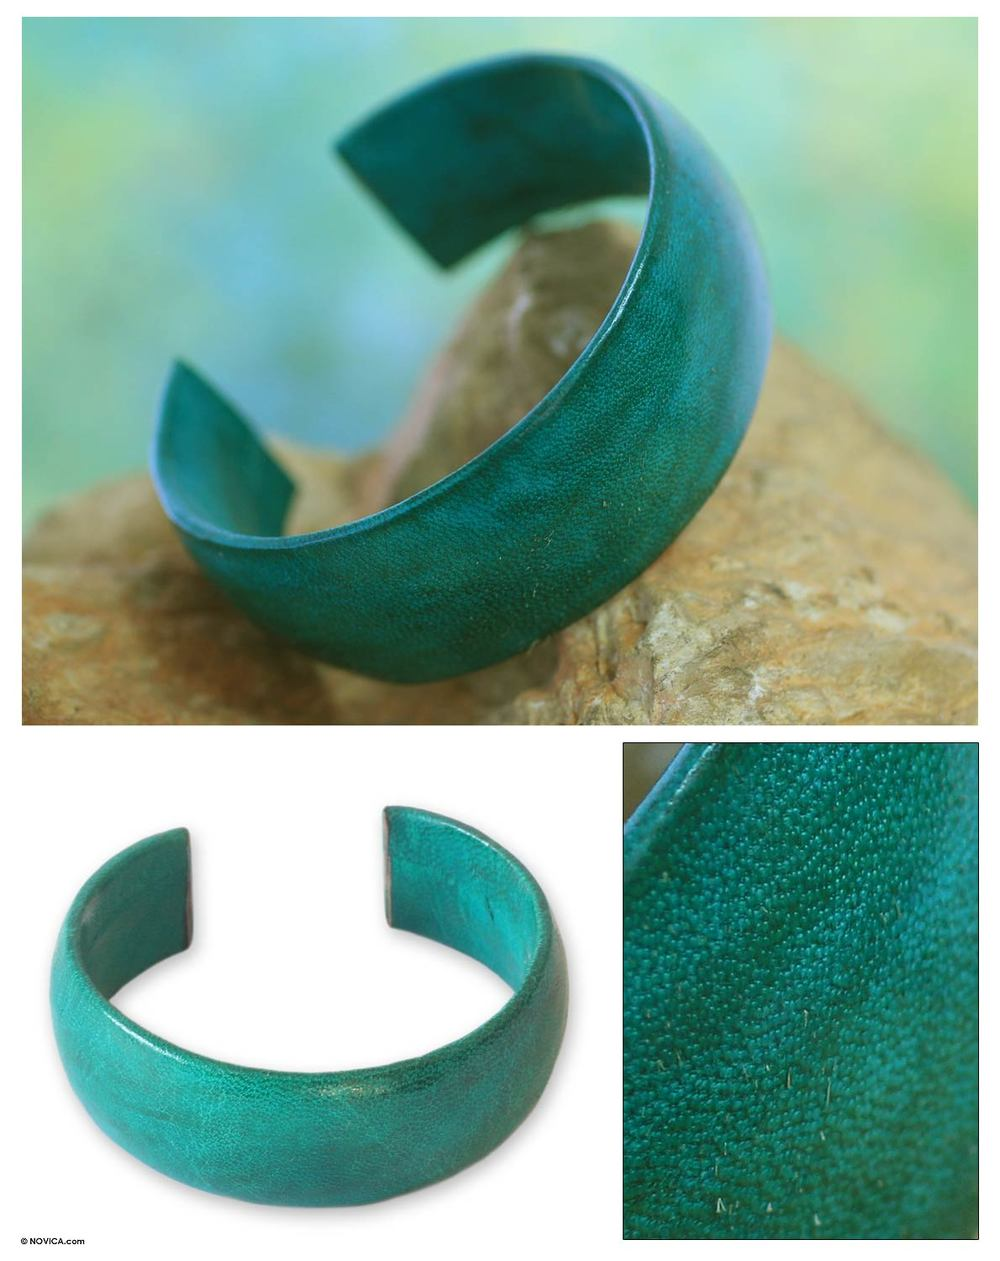 Fair Trade Leather Cuff Bracelet handmade in Ghana. NOVICA. Was: $45 Now: $28.